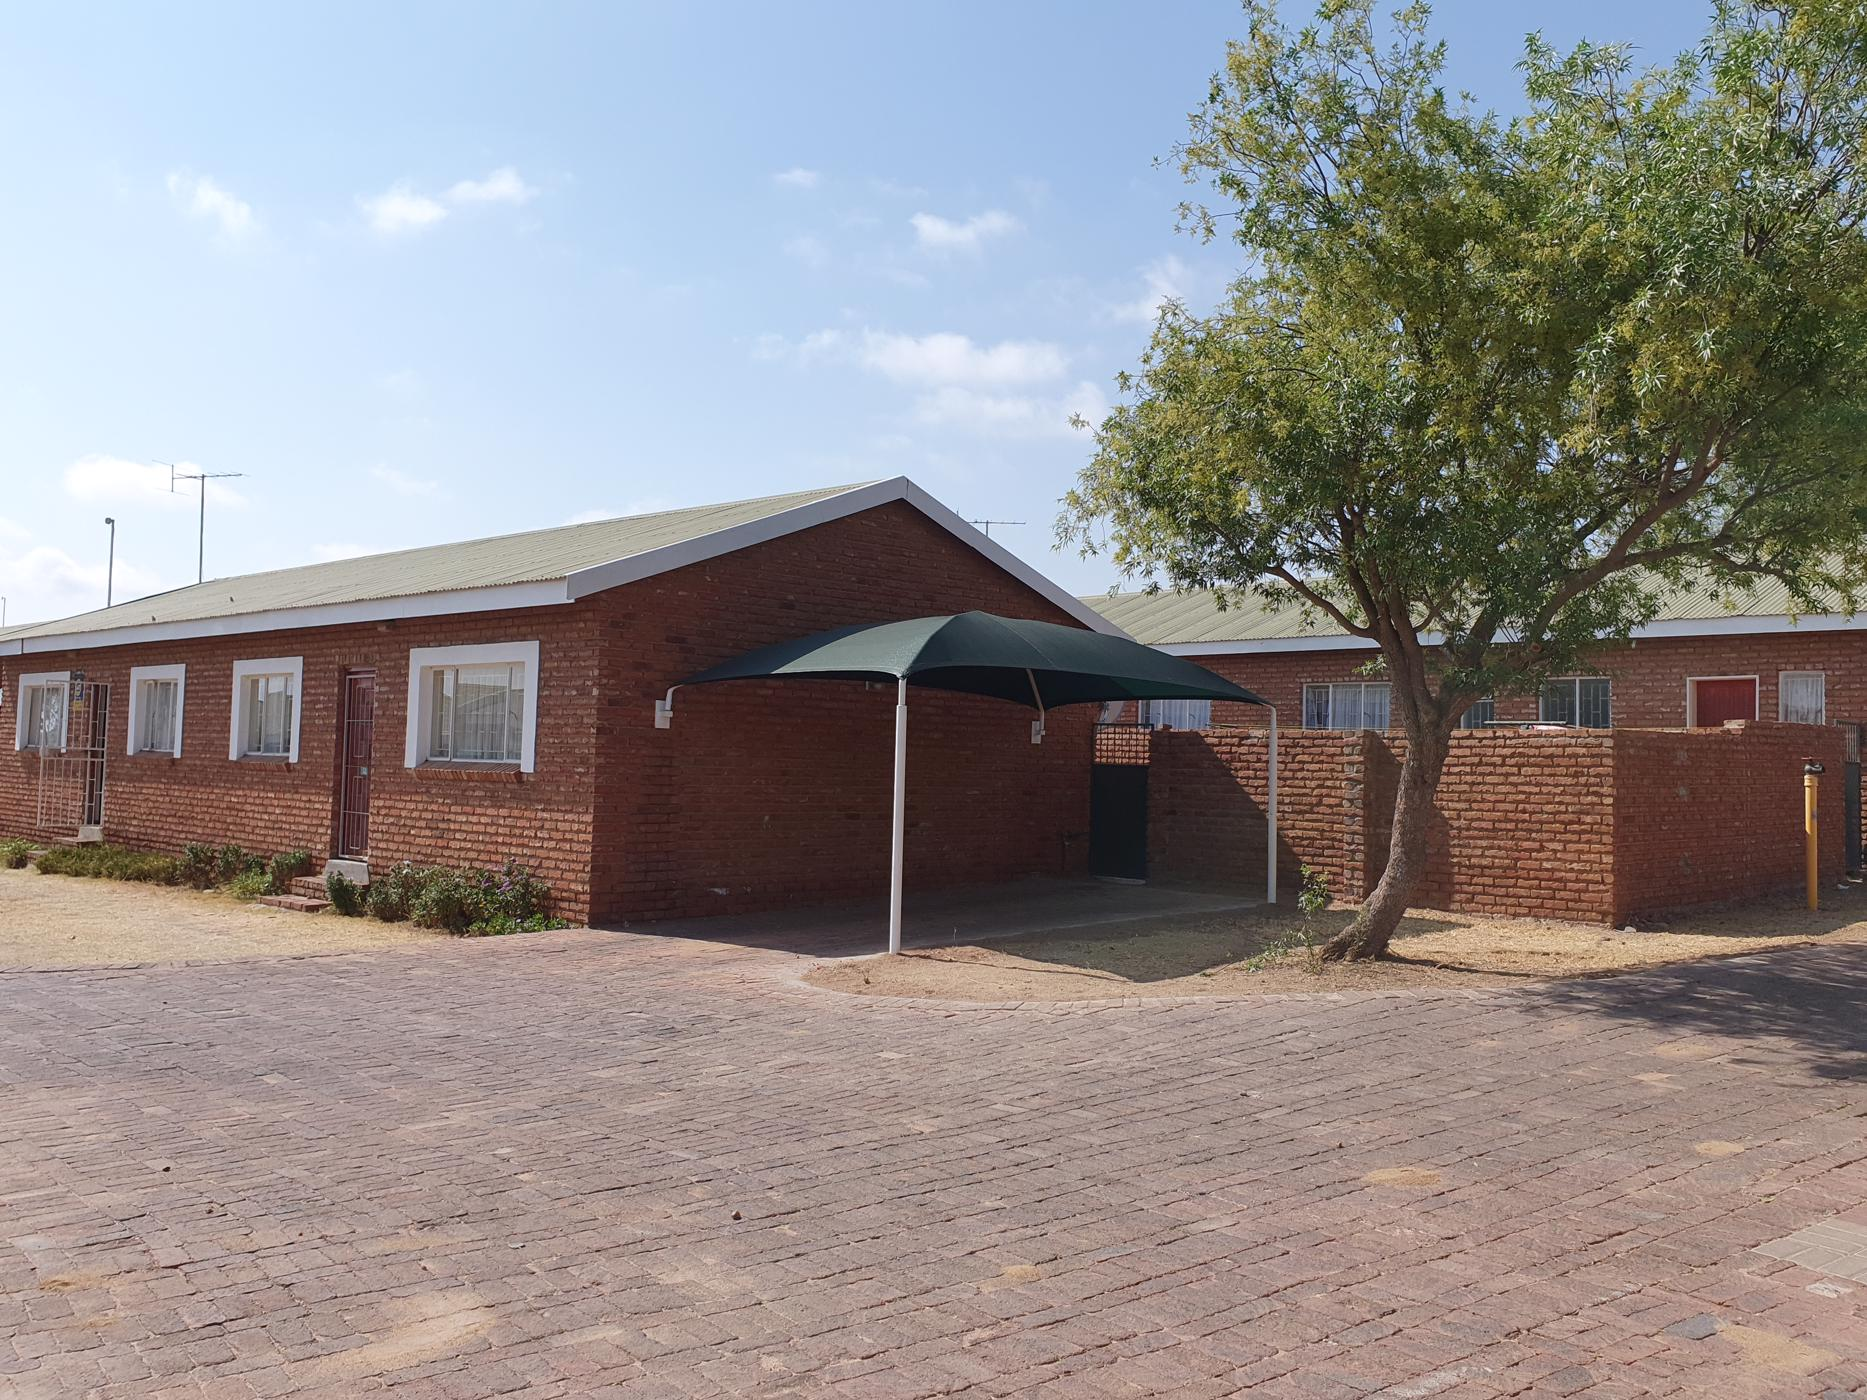 https://listing.pamgolding.co.za/images/properties/201908/570568/H/570568_H_16.jpg